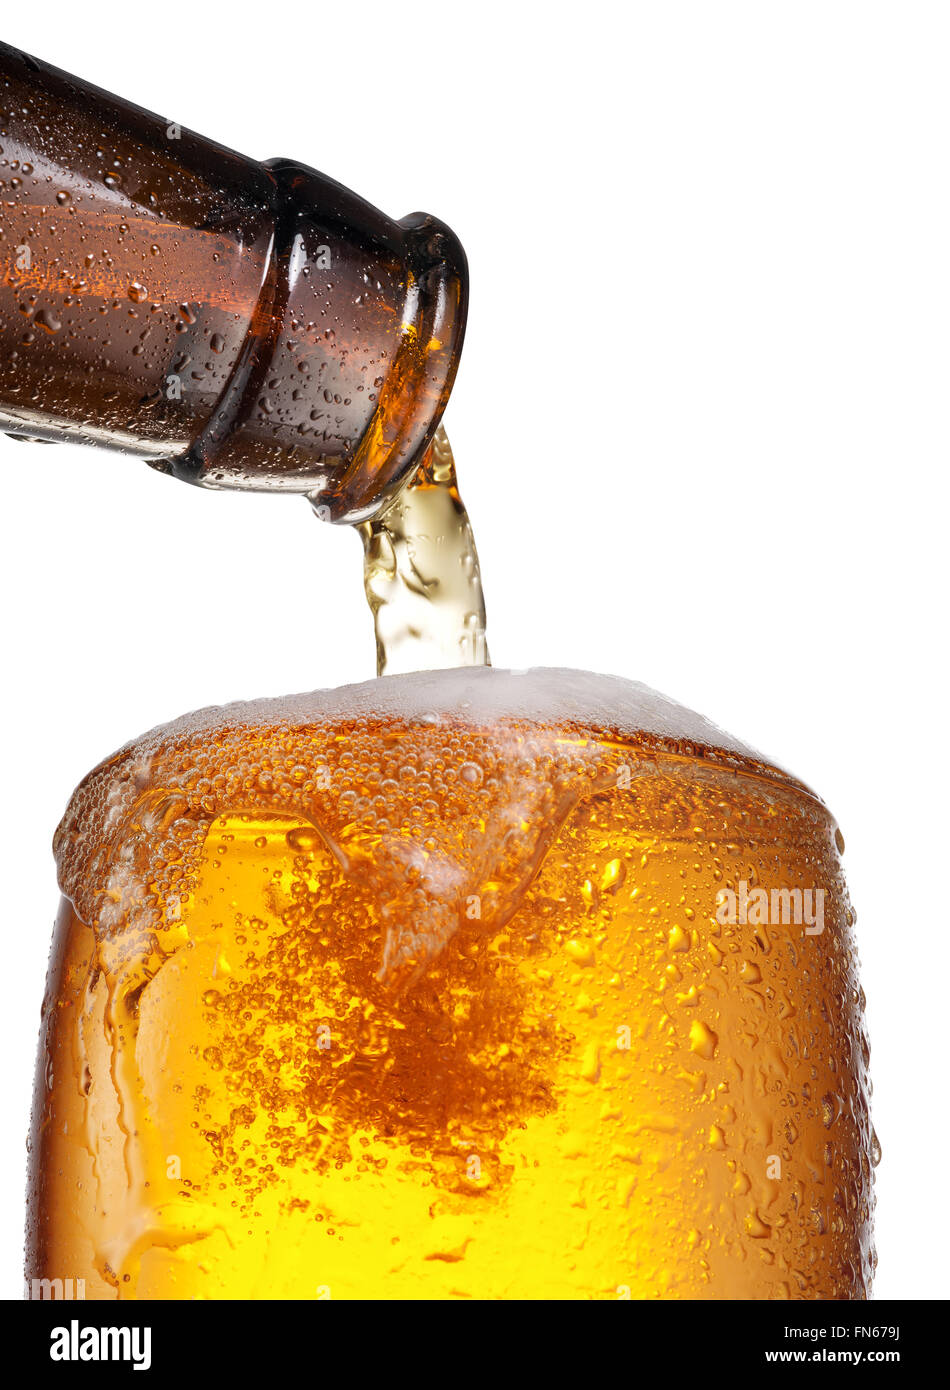 The process of pouring beer into the glass. File contains clipping paths. - Stock Image